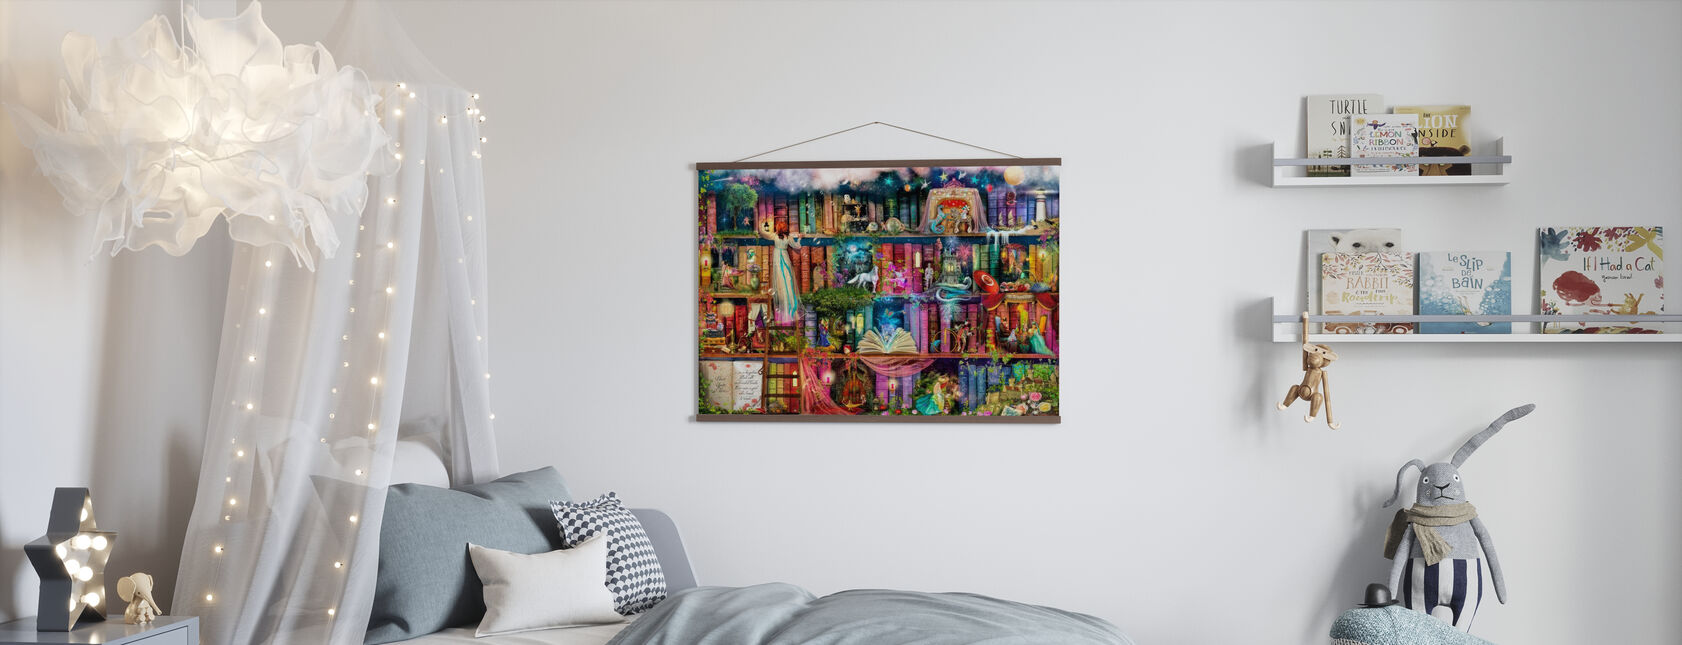 Treasure Hunt Book Shelf - Poster - Kids Room